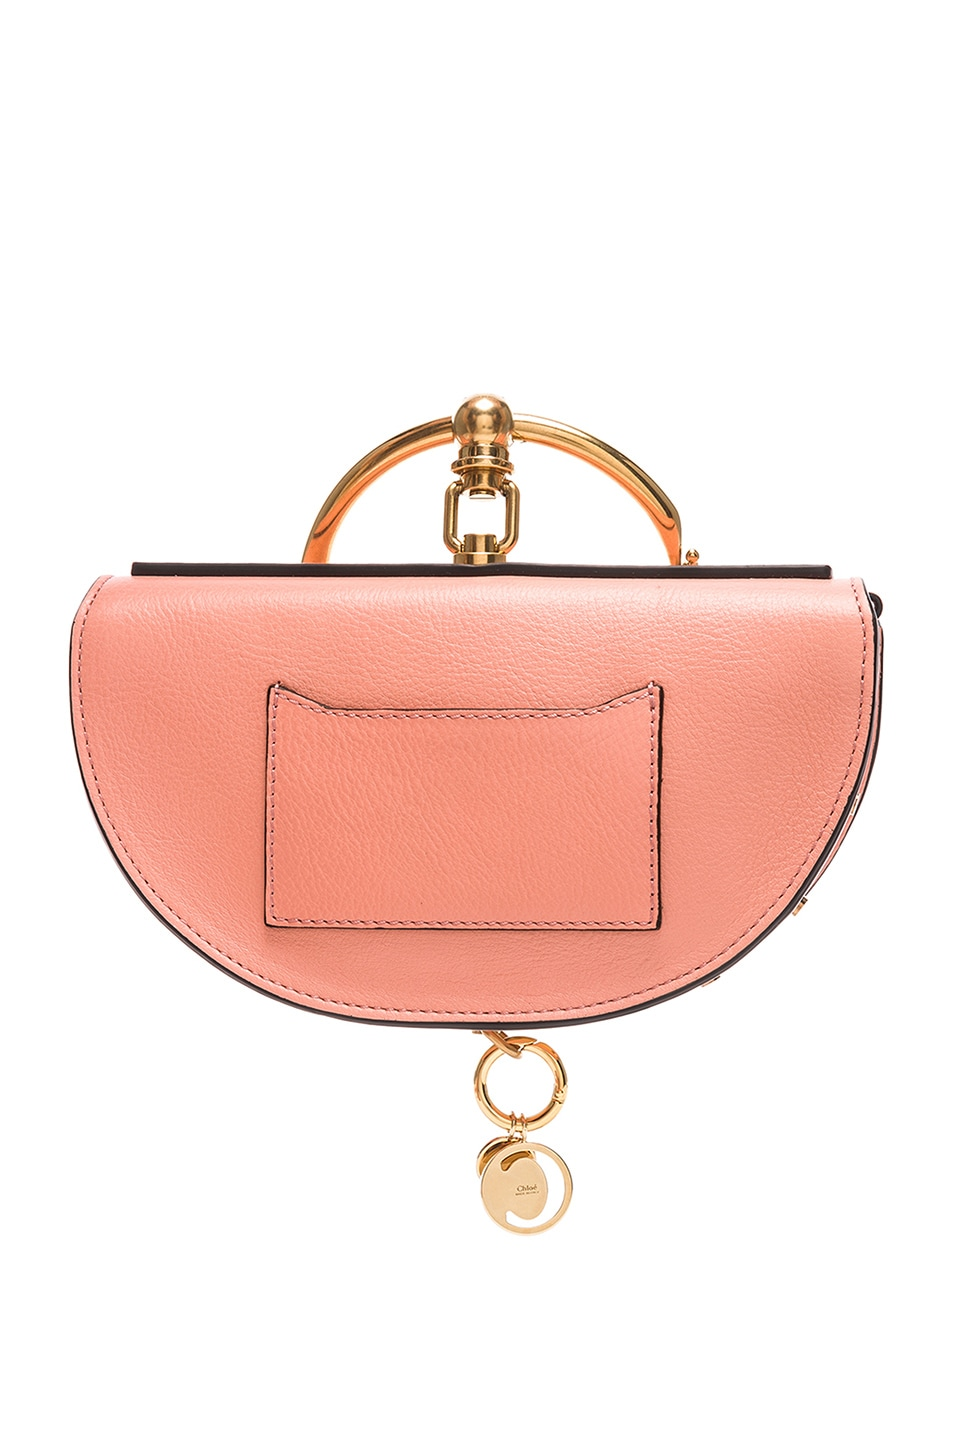 Image 3 of Chloe Small Nile Leather Minaudiere in Ideal Blush